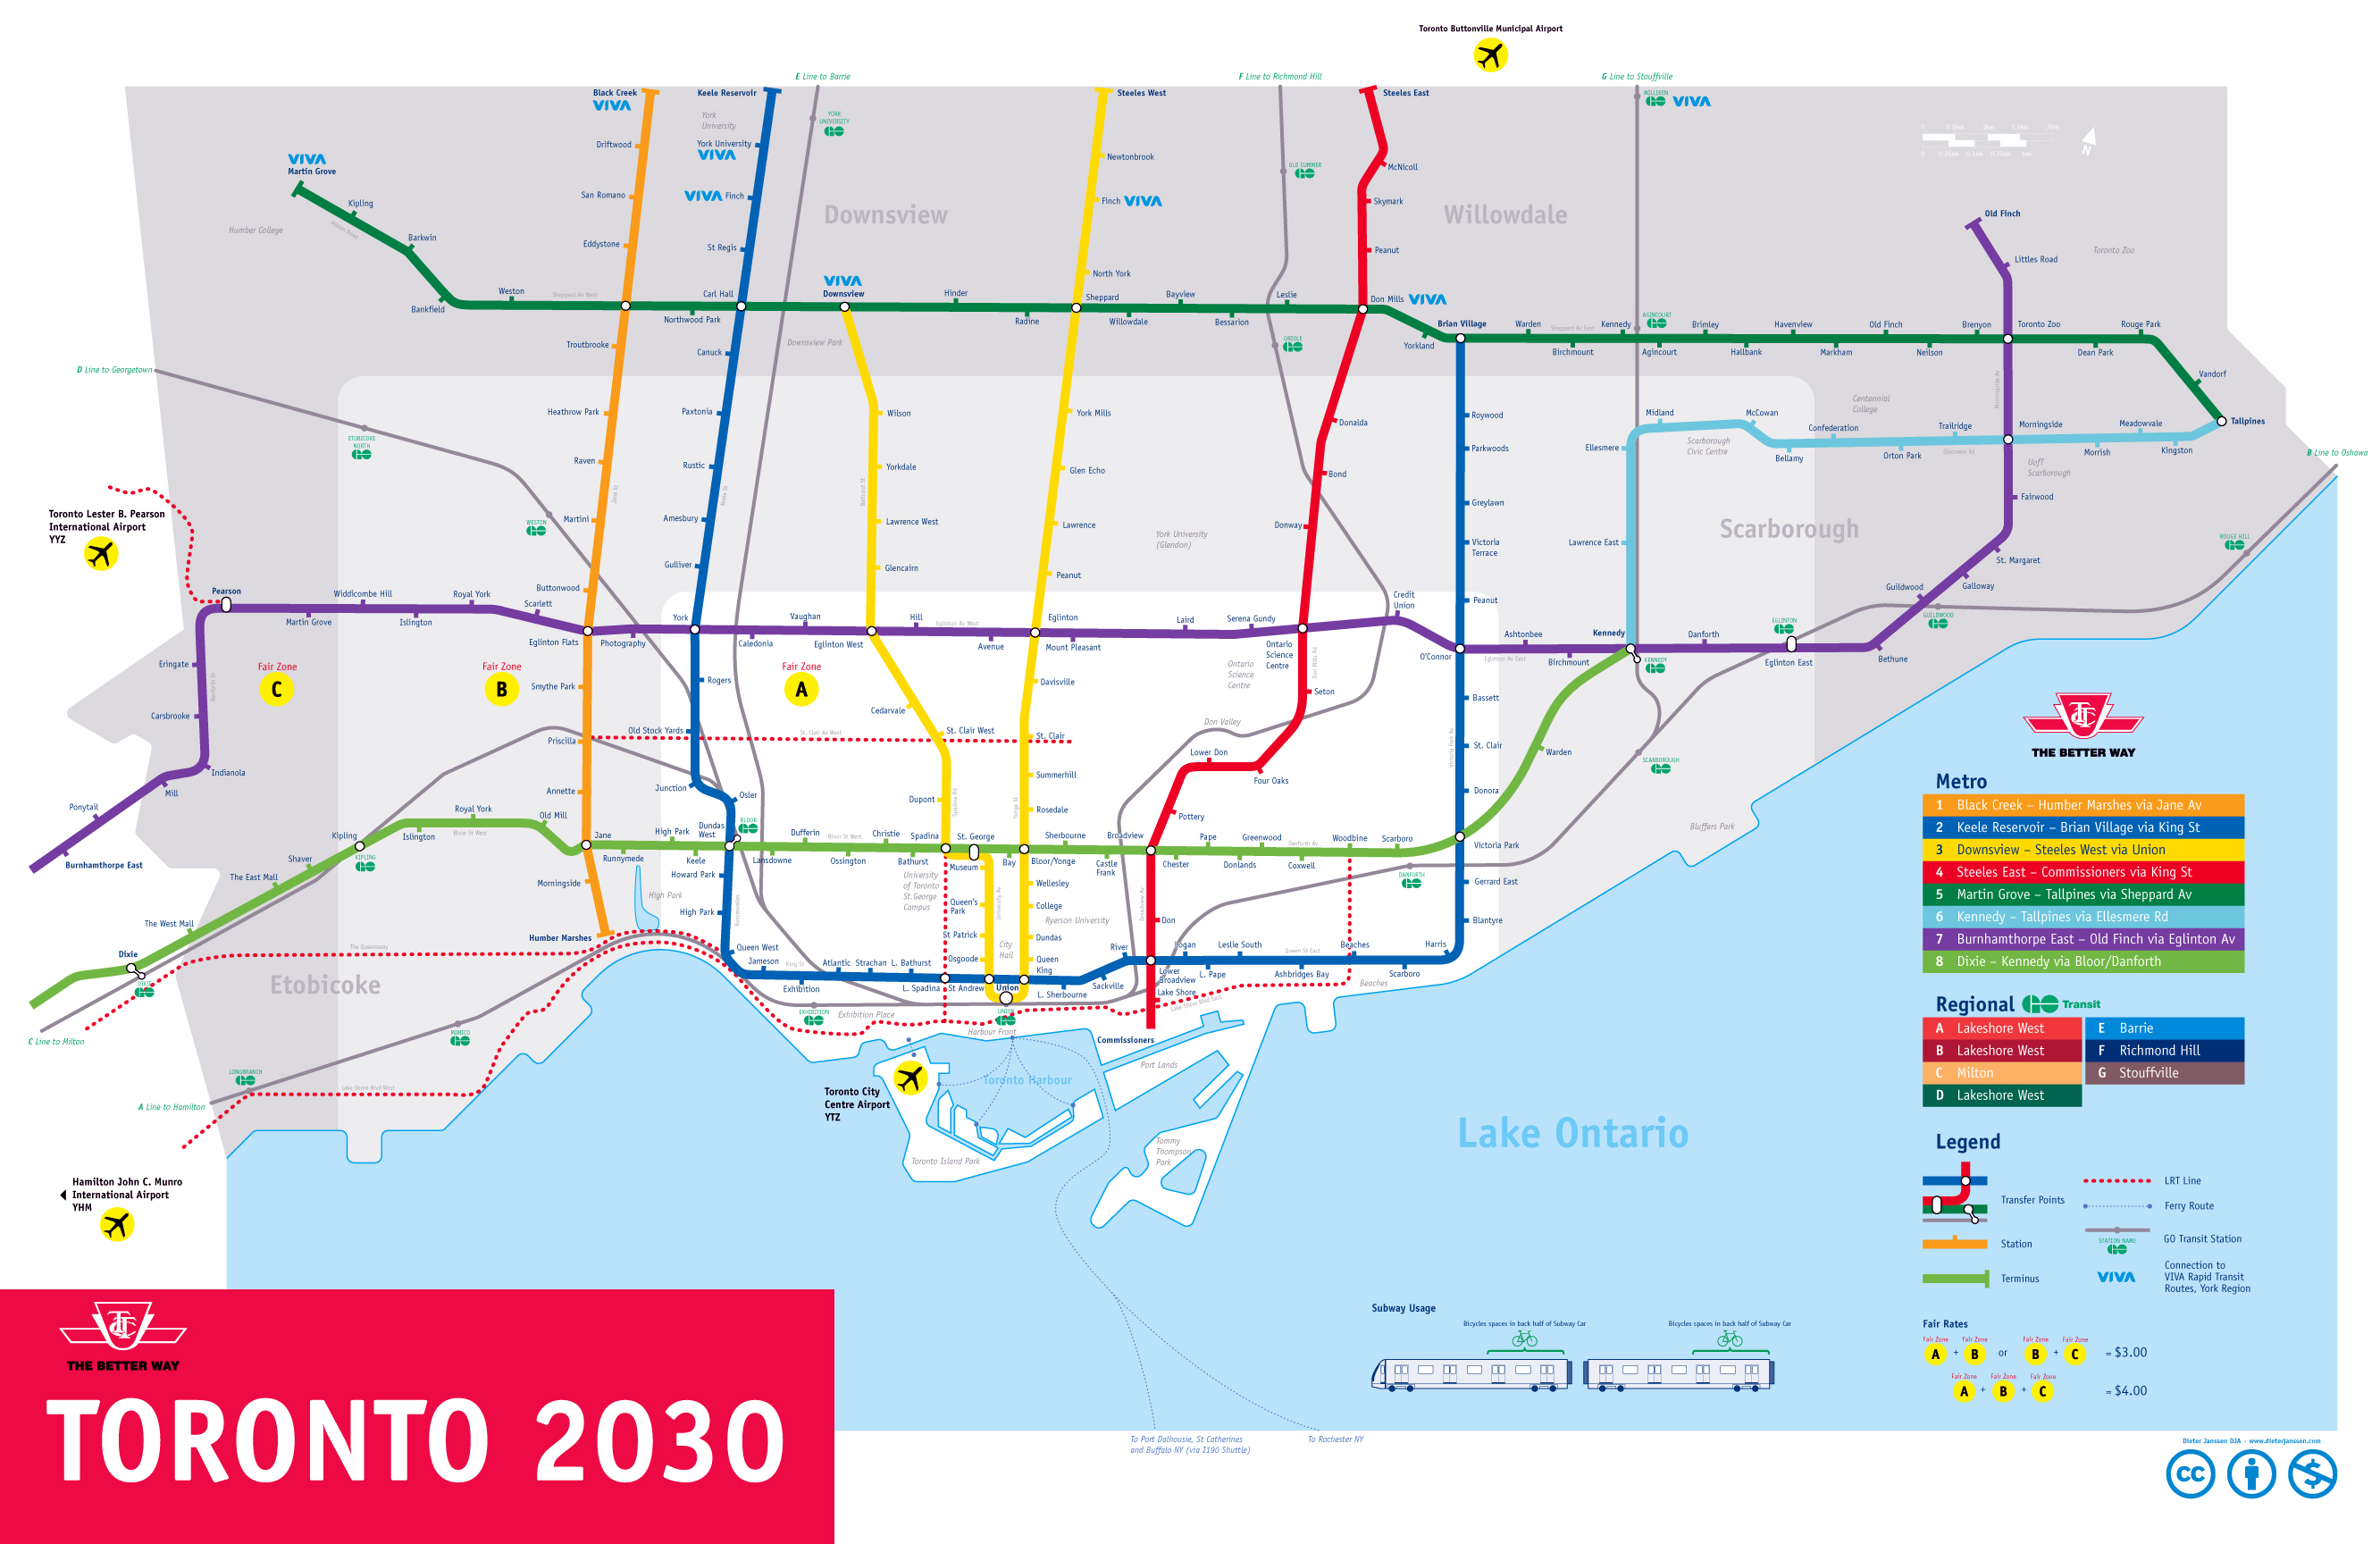 Toronto Subway Map Print.Large Subway Map Of Toronto 2030 Toronto Large Subway Map